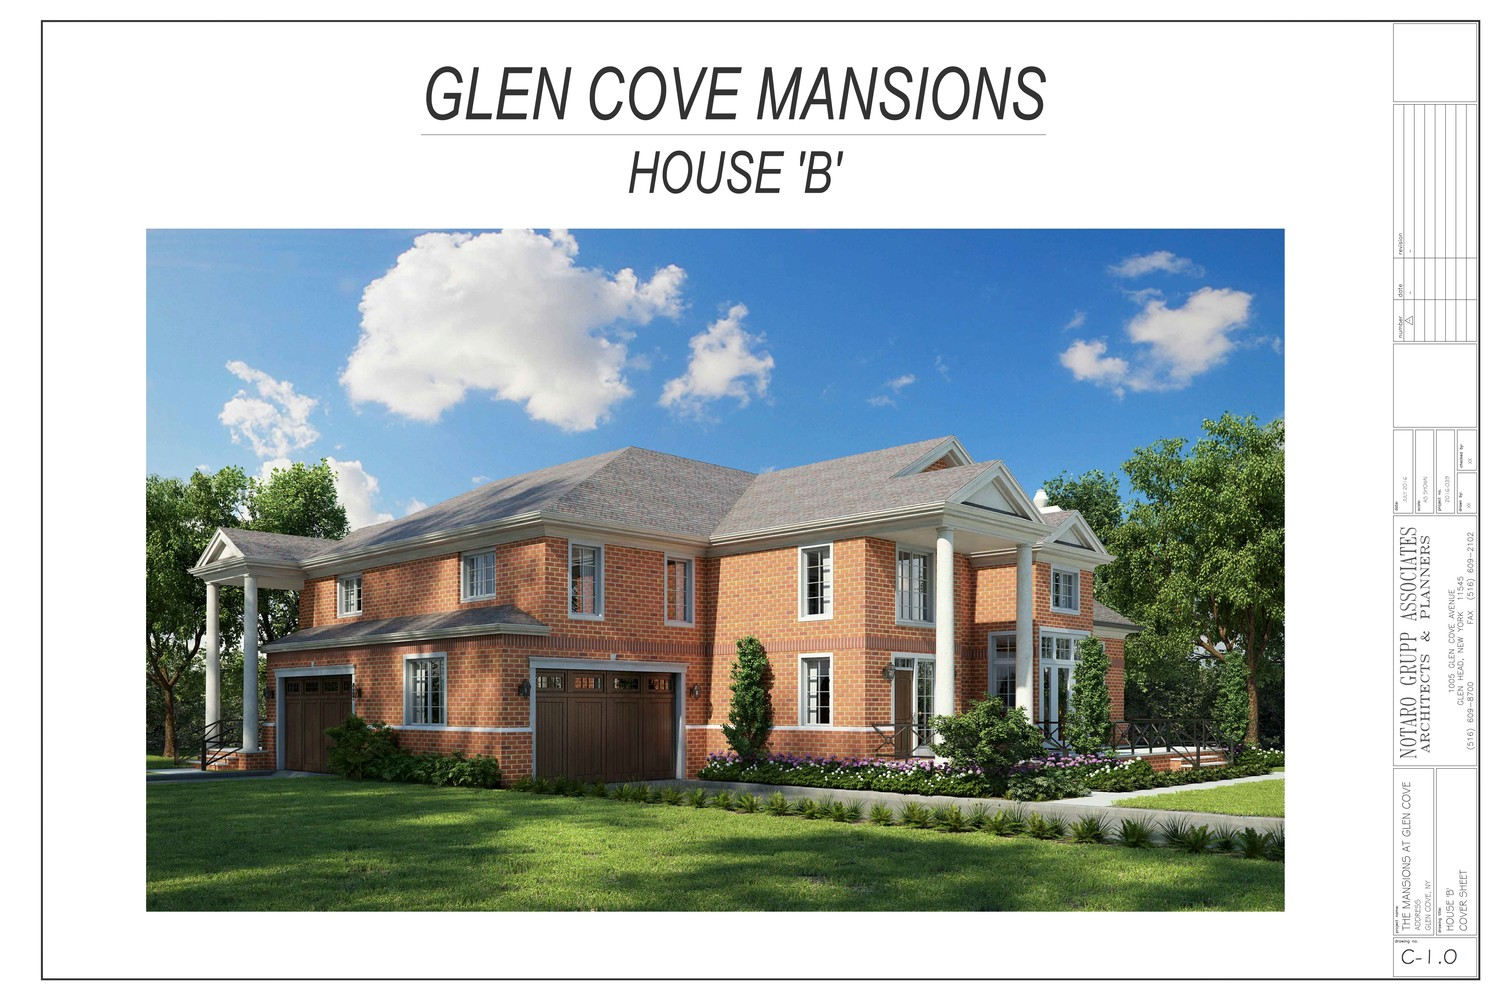 The Residences at The Mansion project will have 40 single-family luxury homes.